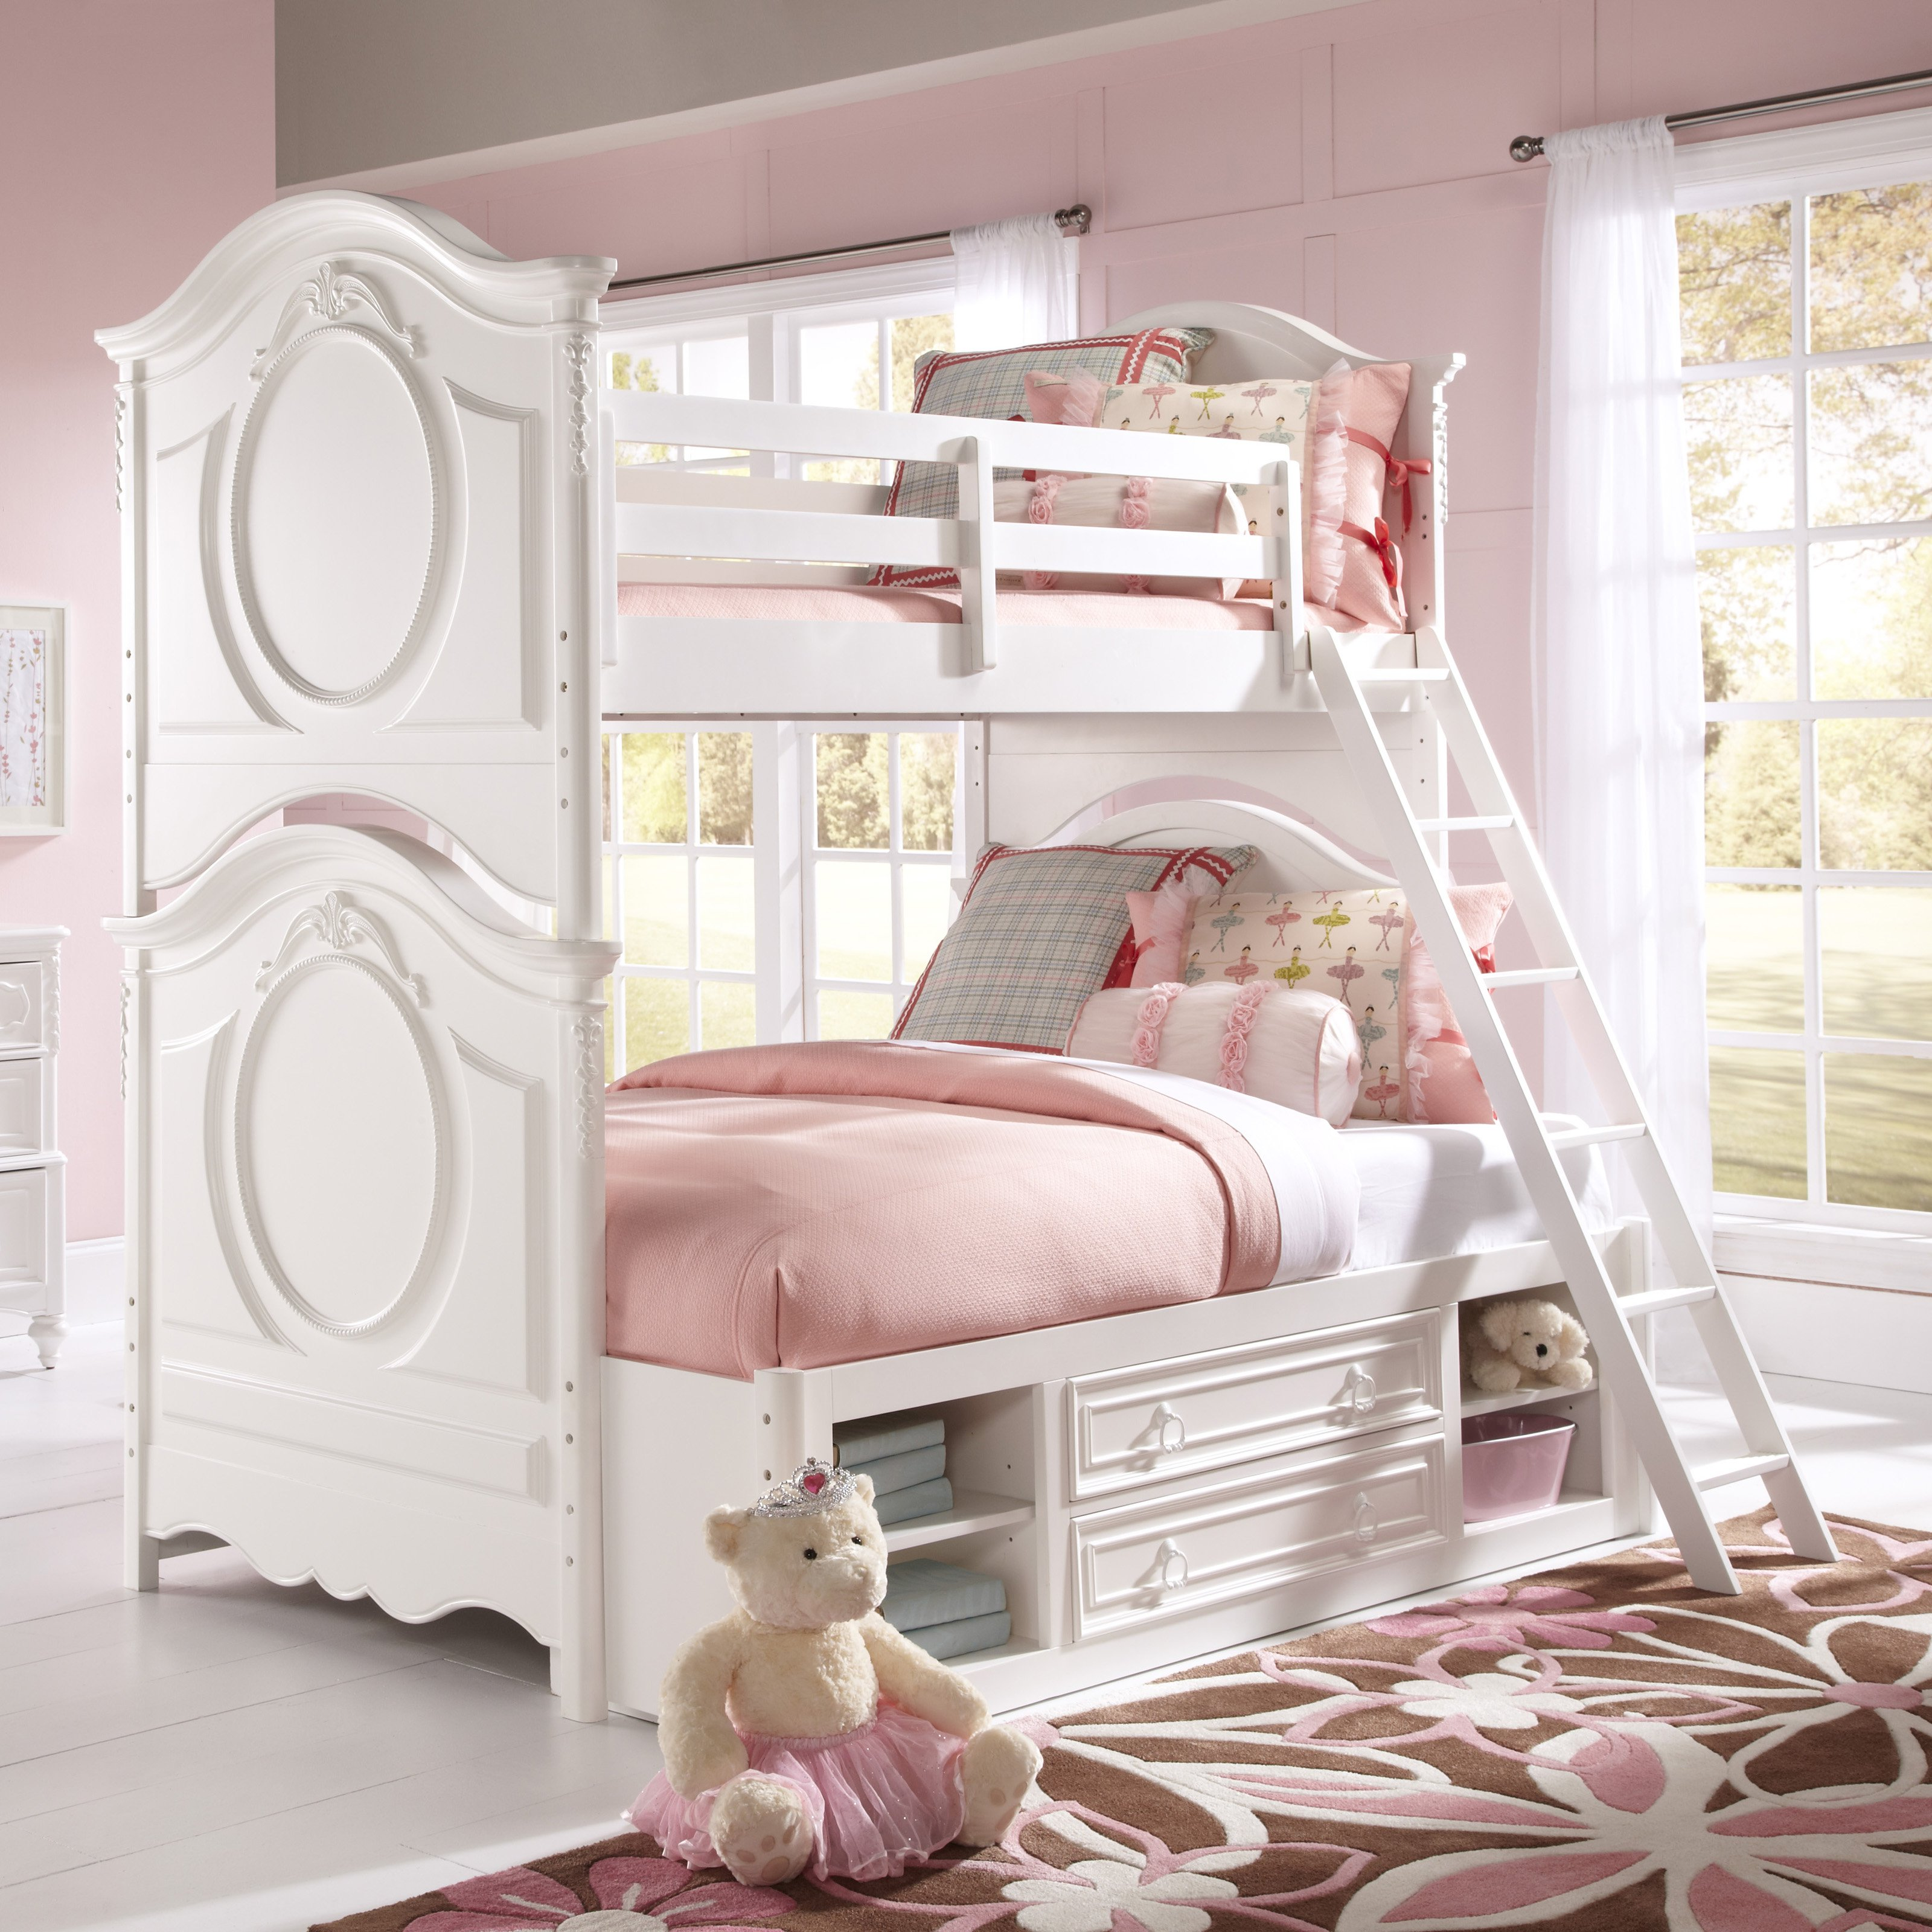 SweetHeart Twin over Full Bunk Bed - White